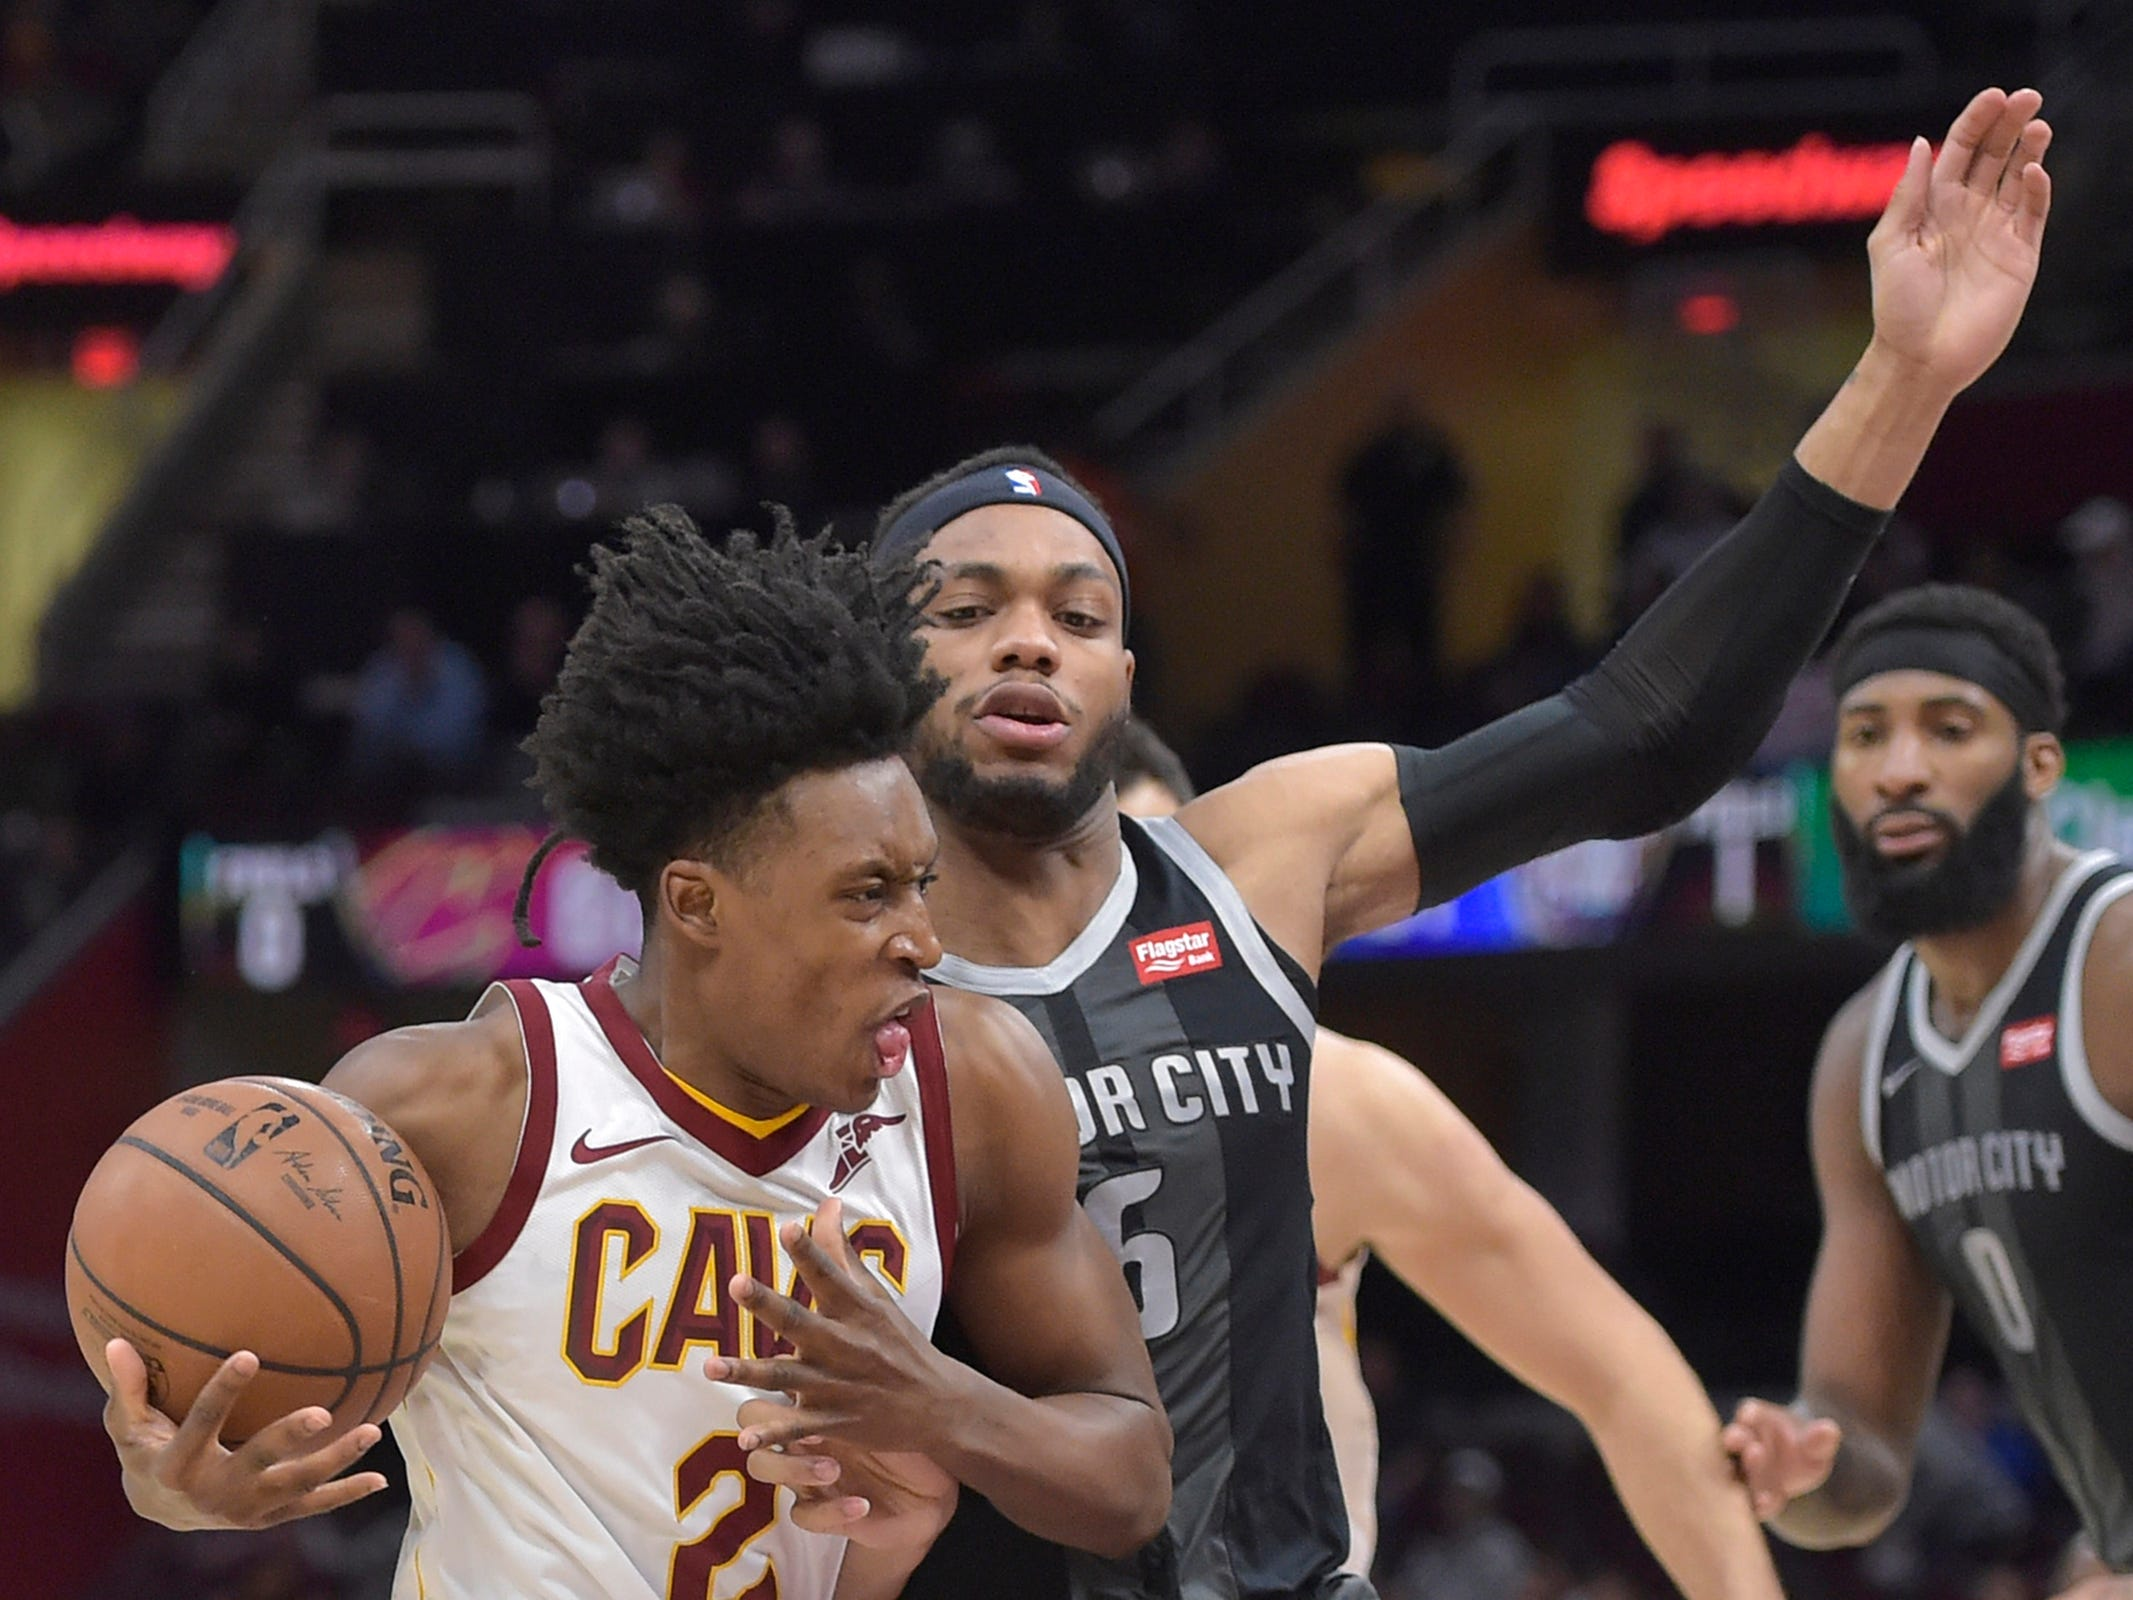 Cleveland Cavaliers guard Collin Sexton drives against Detroit Pistons guard Bruce Brown in the third quarter at Quicken Loans Arena, March 18, 2019.